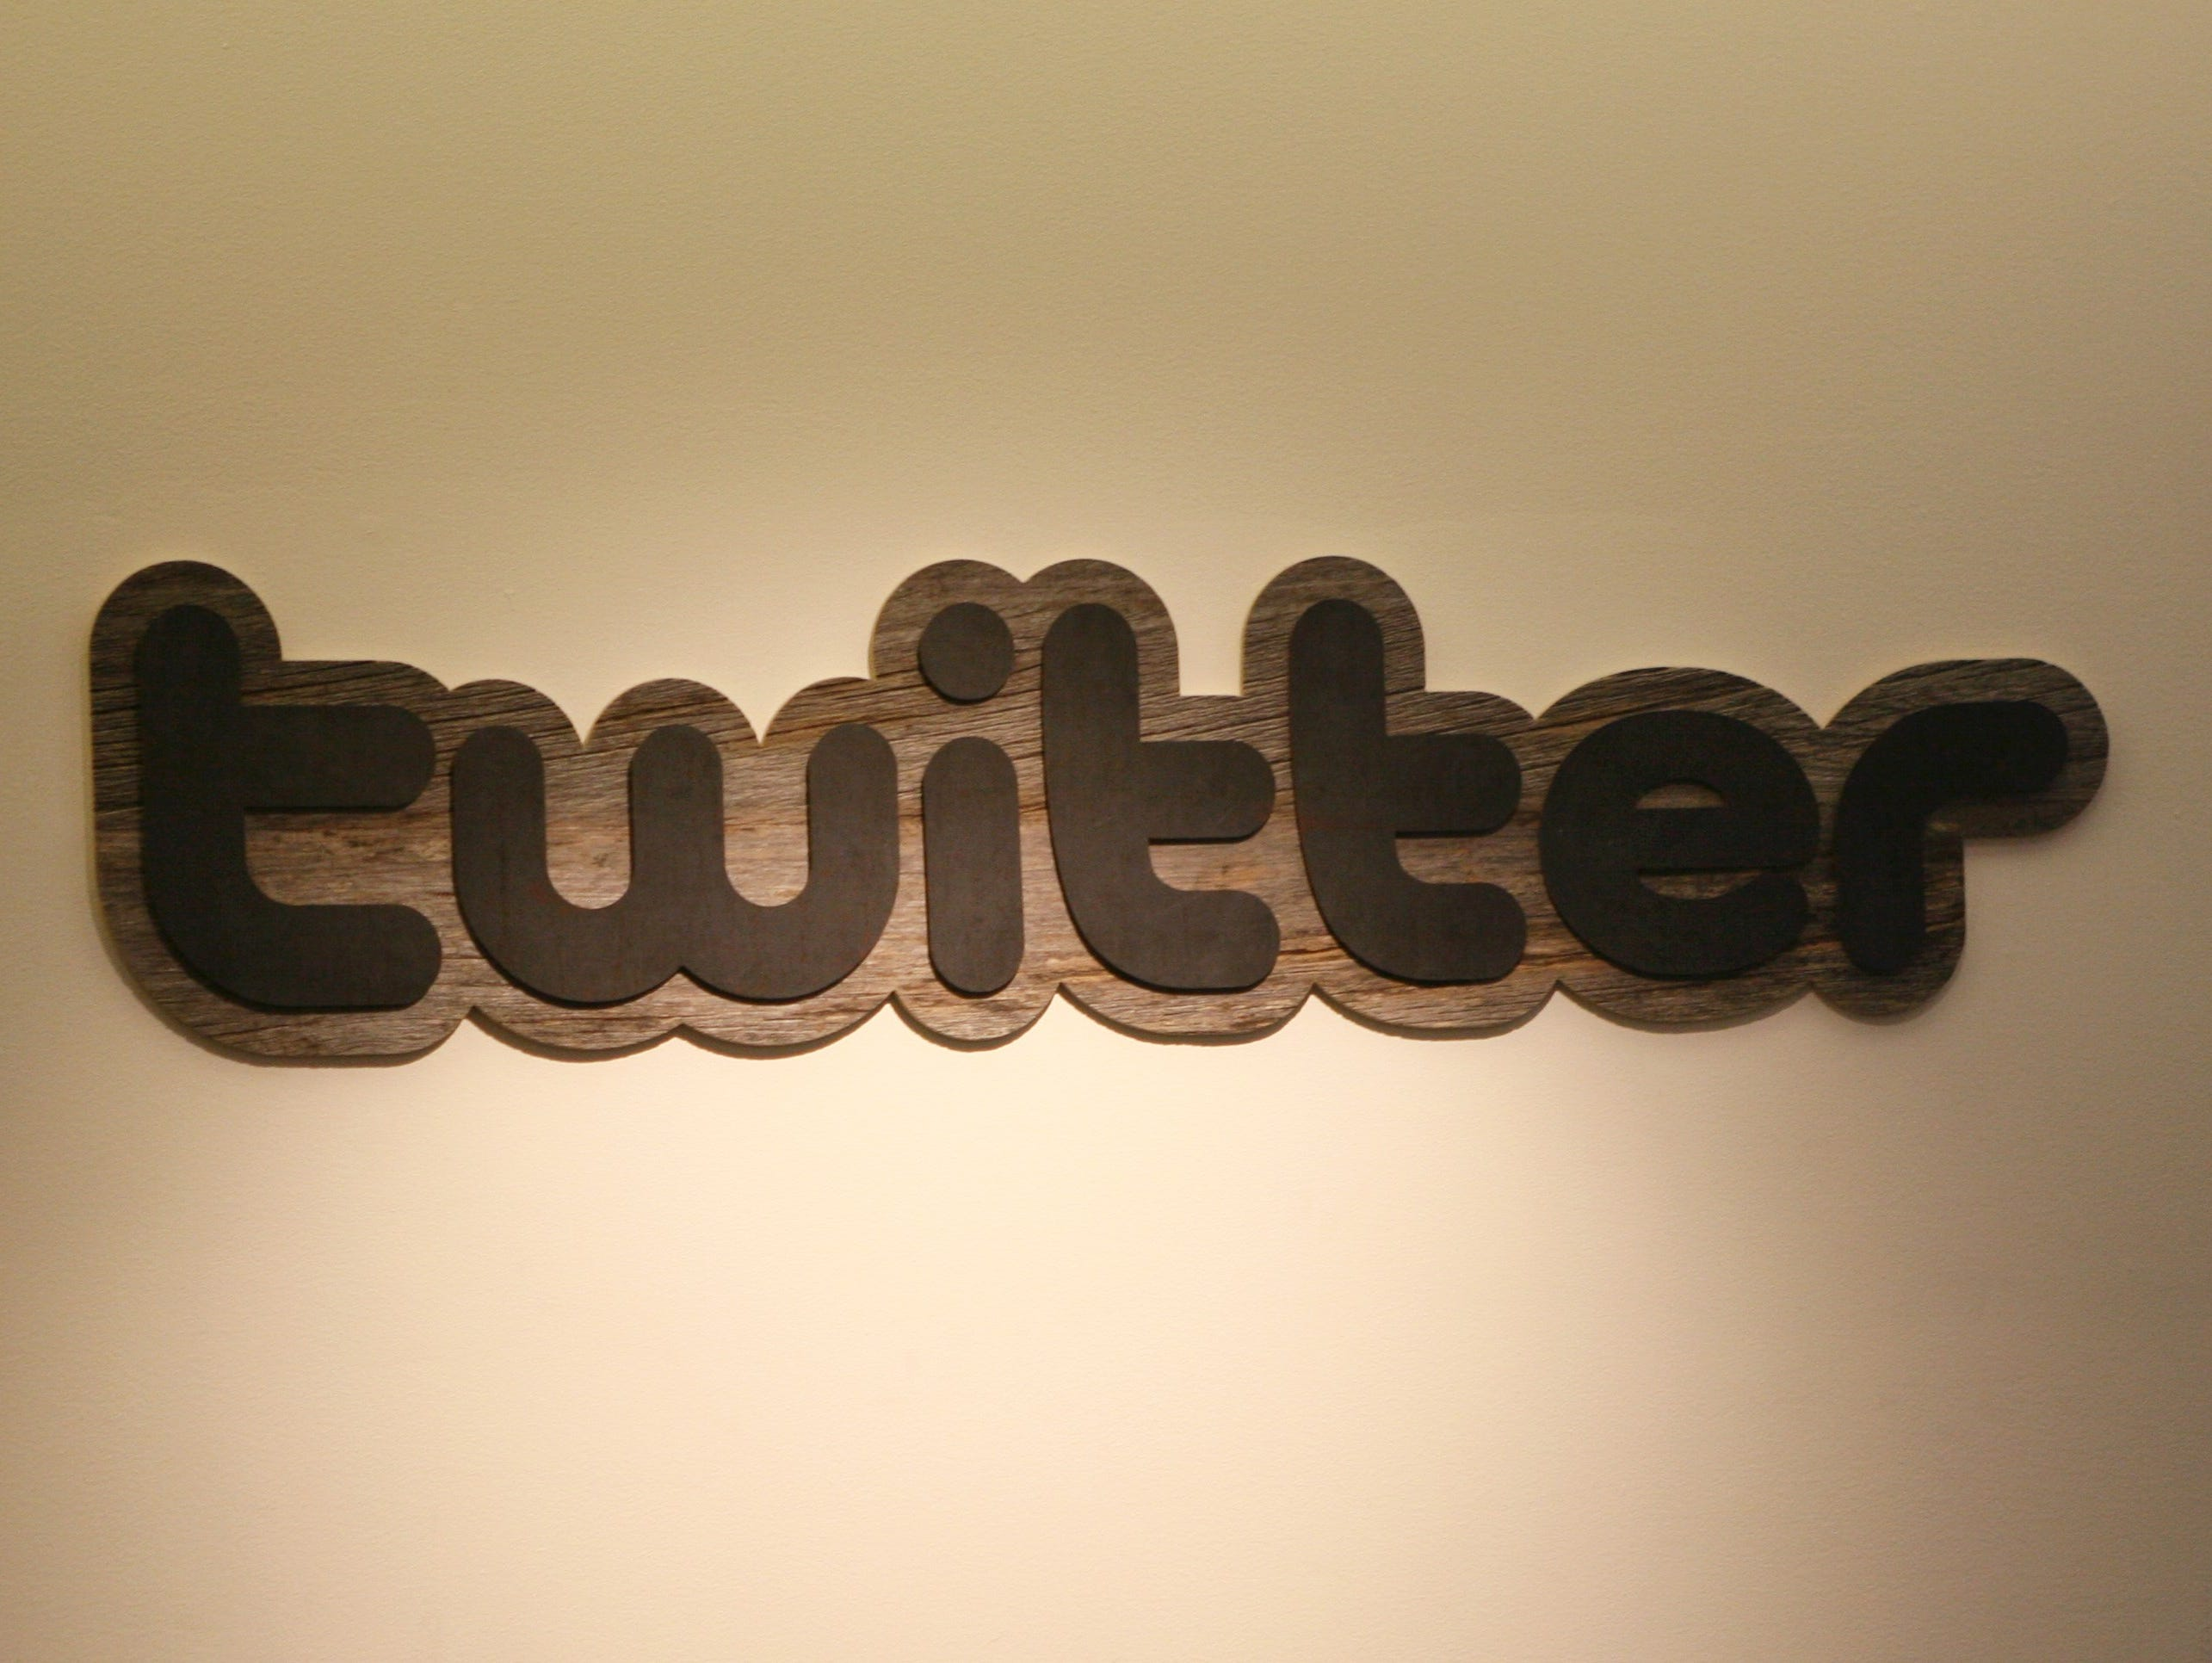 Twitter tumbles to record low